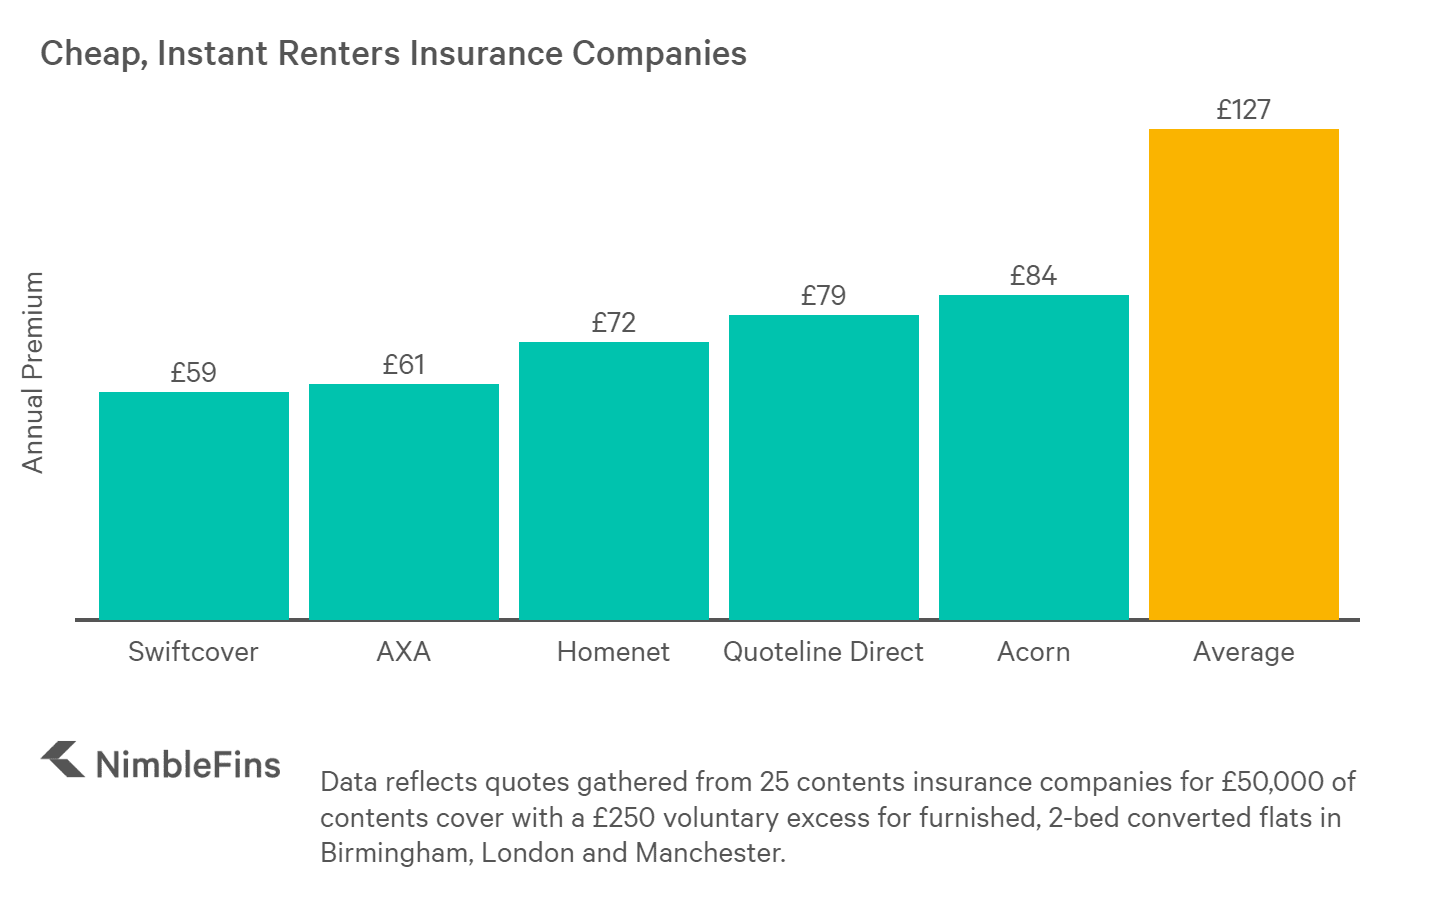 chart showing cheap instant renters insurance companies